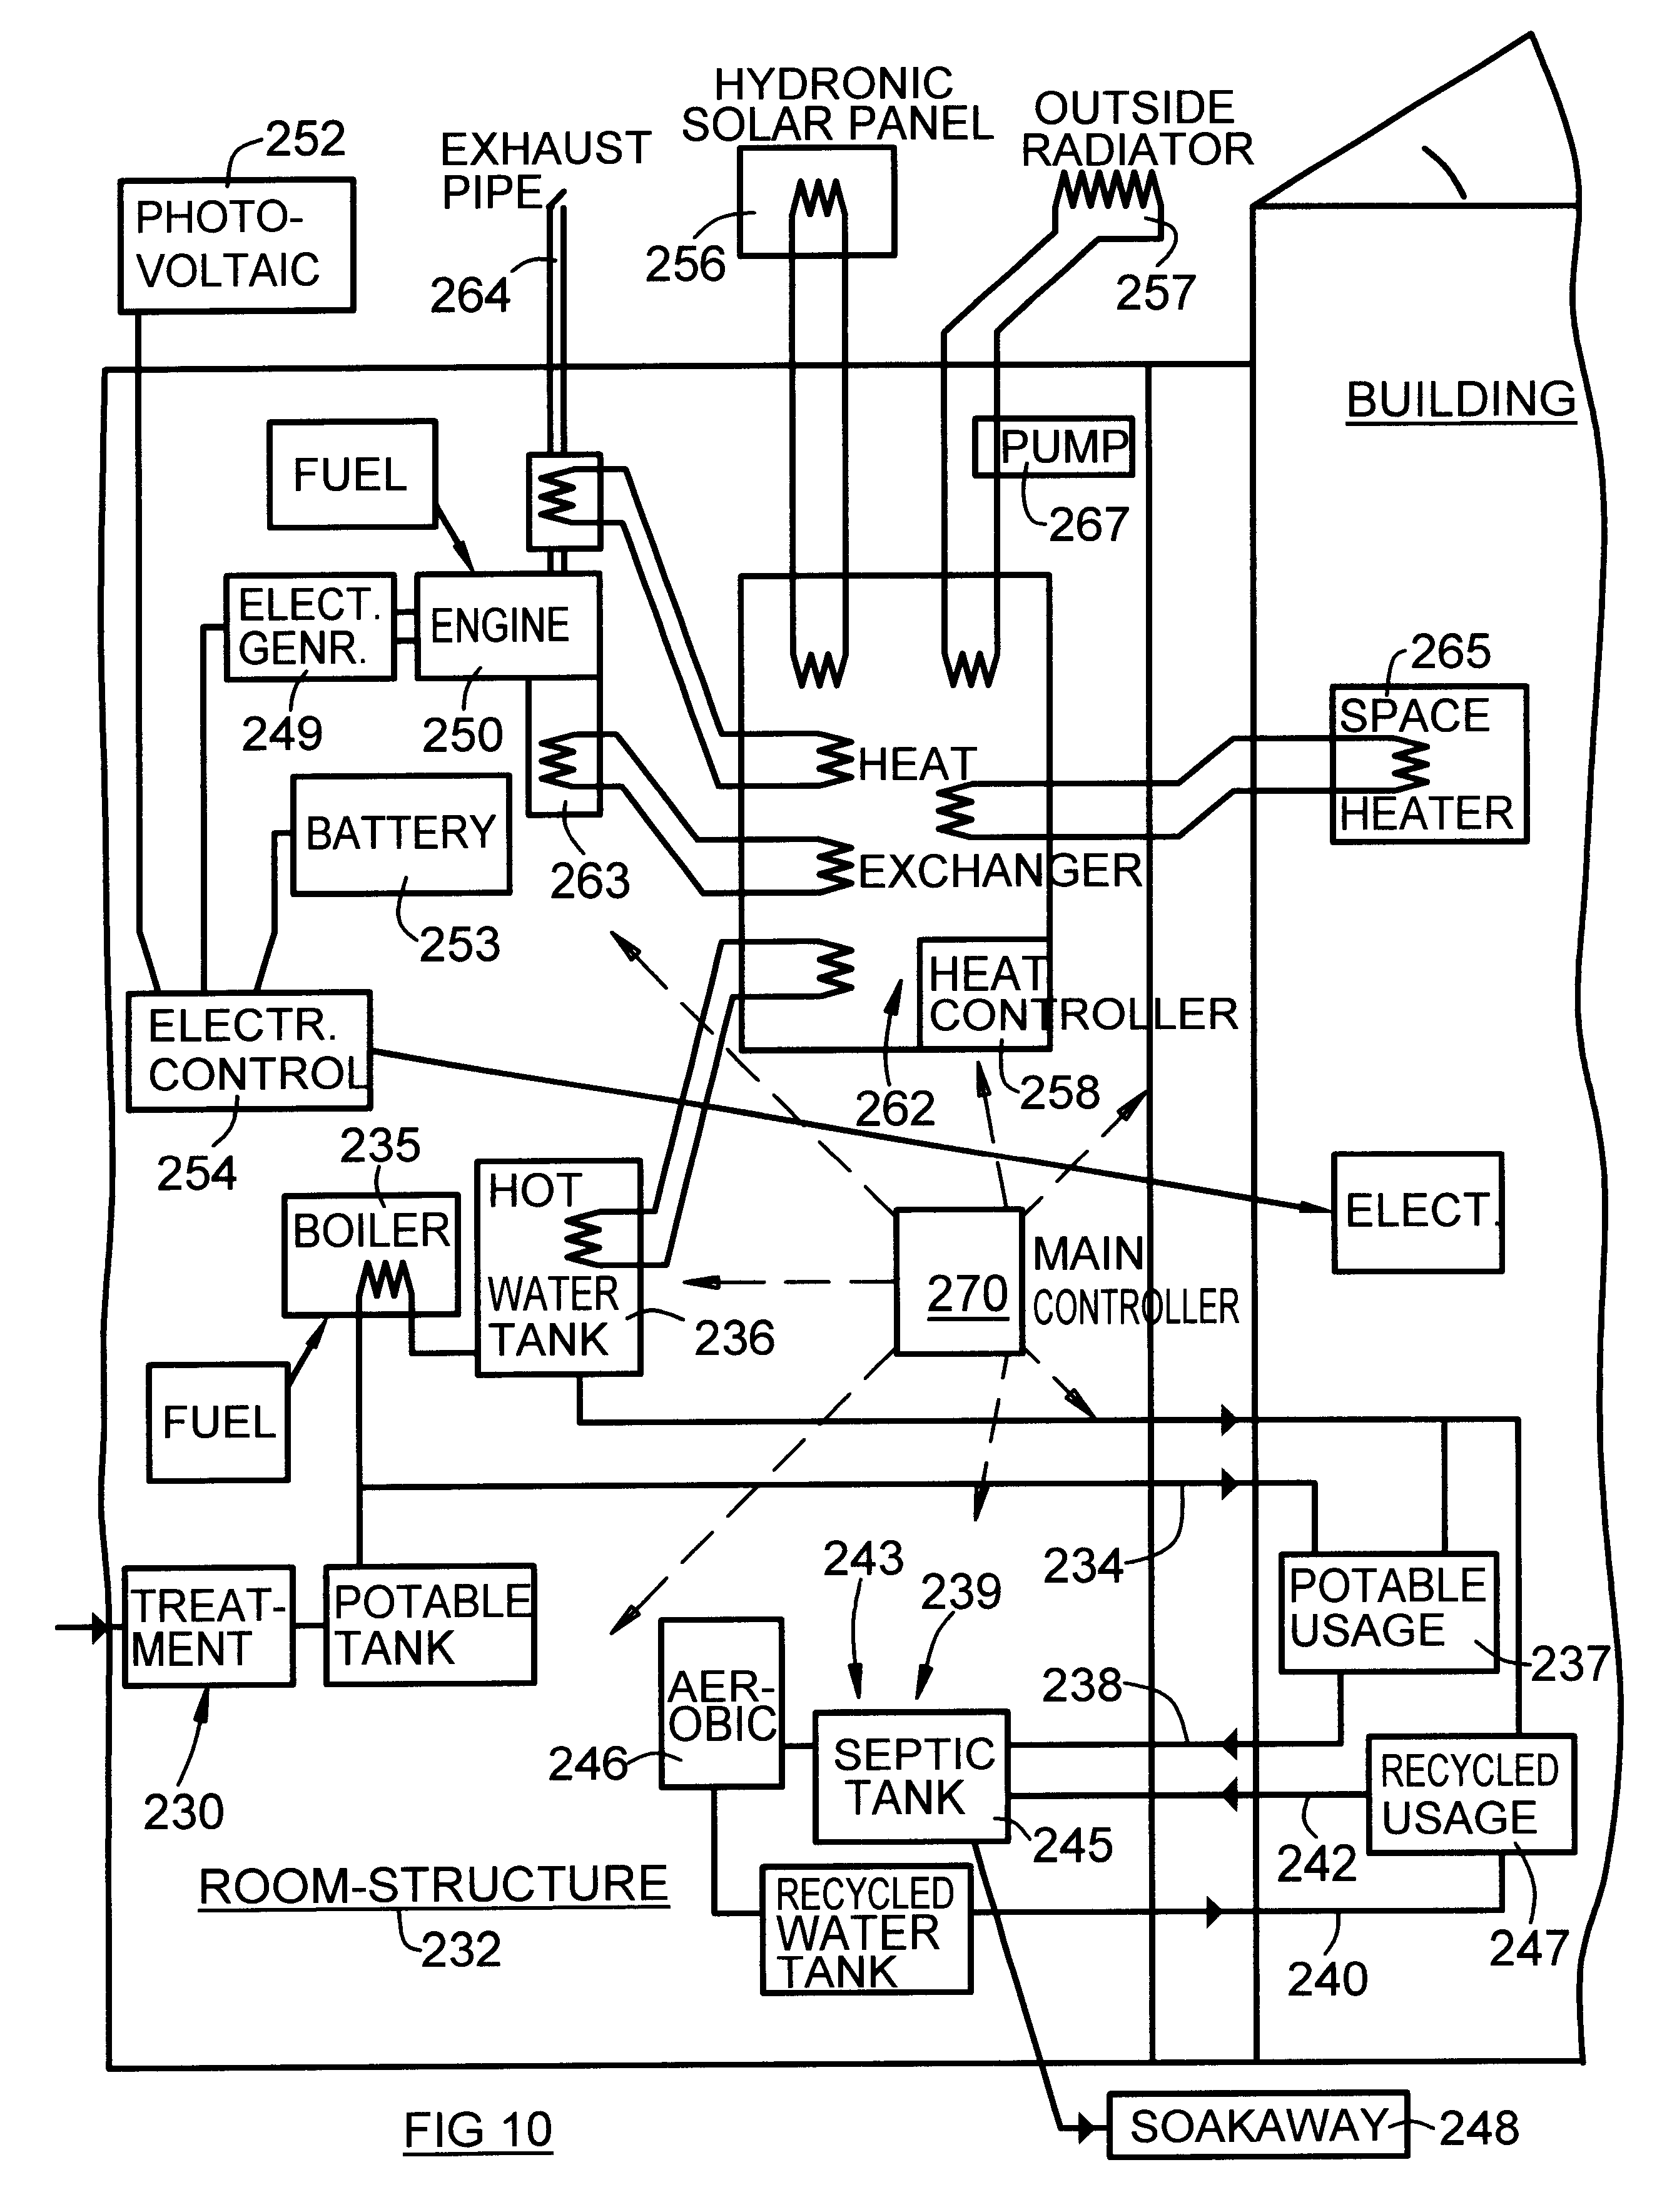 96 Ford Windstar Repair Diagrams together with Wiring Diagram 98 Town Car Fuel Pump additionally Pontiac Grand Prix Fuse Box Diagram also 1965 Mustang Wiring Diagrams as well Chevy Impala Flasher Location. on 2000 lincoln continental fuel pump location